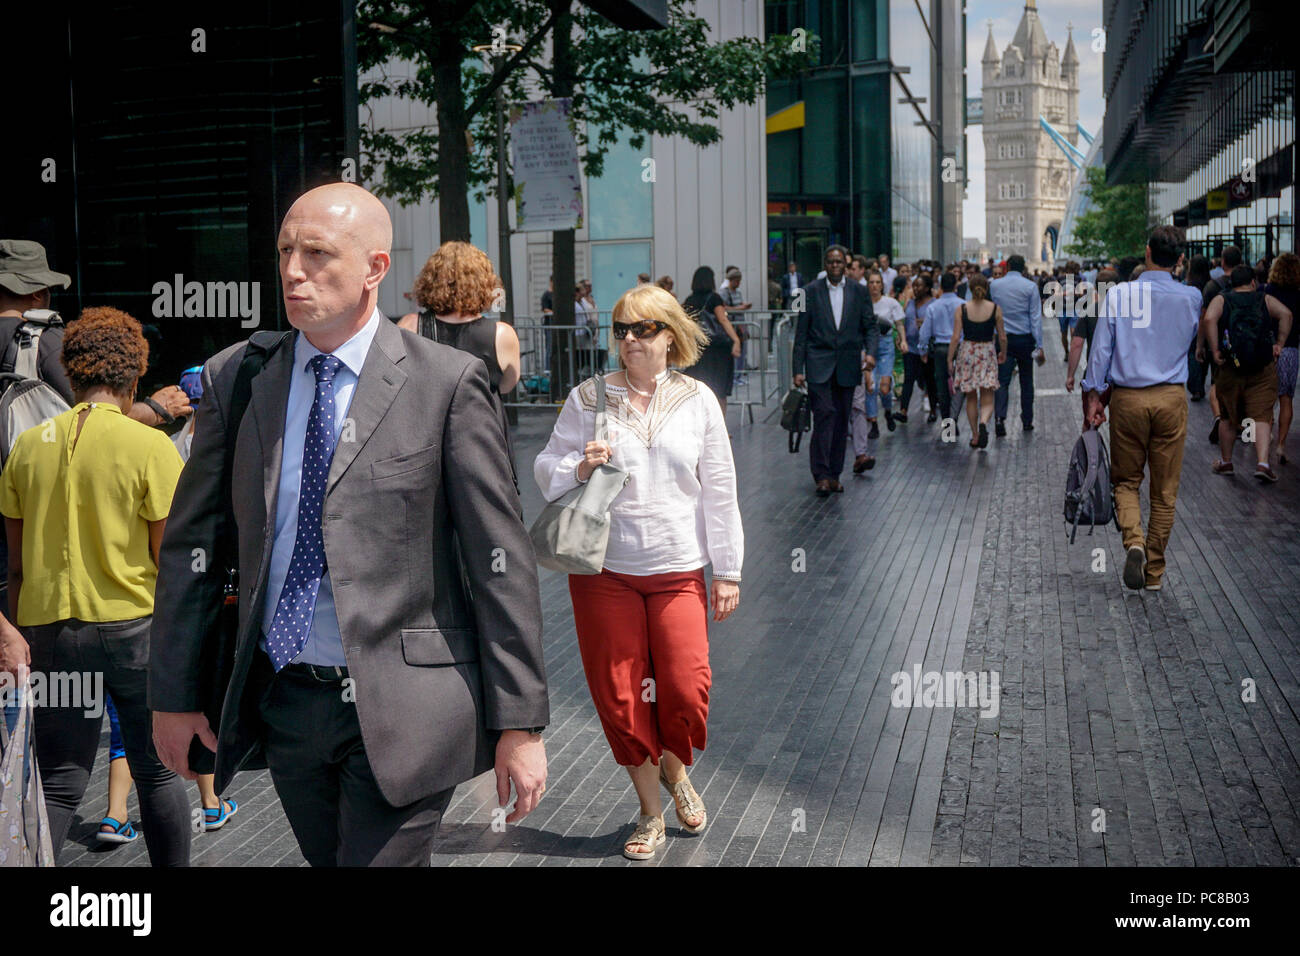 London, UK. 23rd July, 2018. People seen during a hot day in central london. Credit: Ioannis Alexopoulos/Pacific Press/Alamy Live News Stock Photo